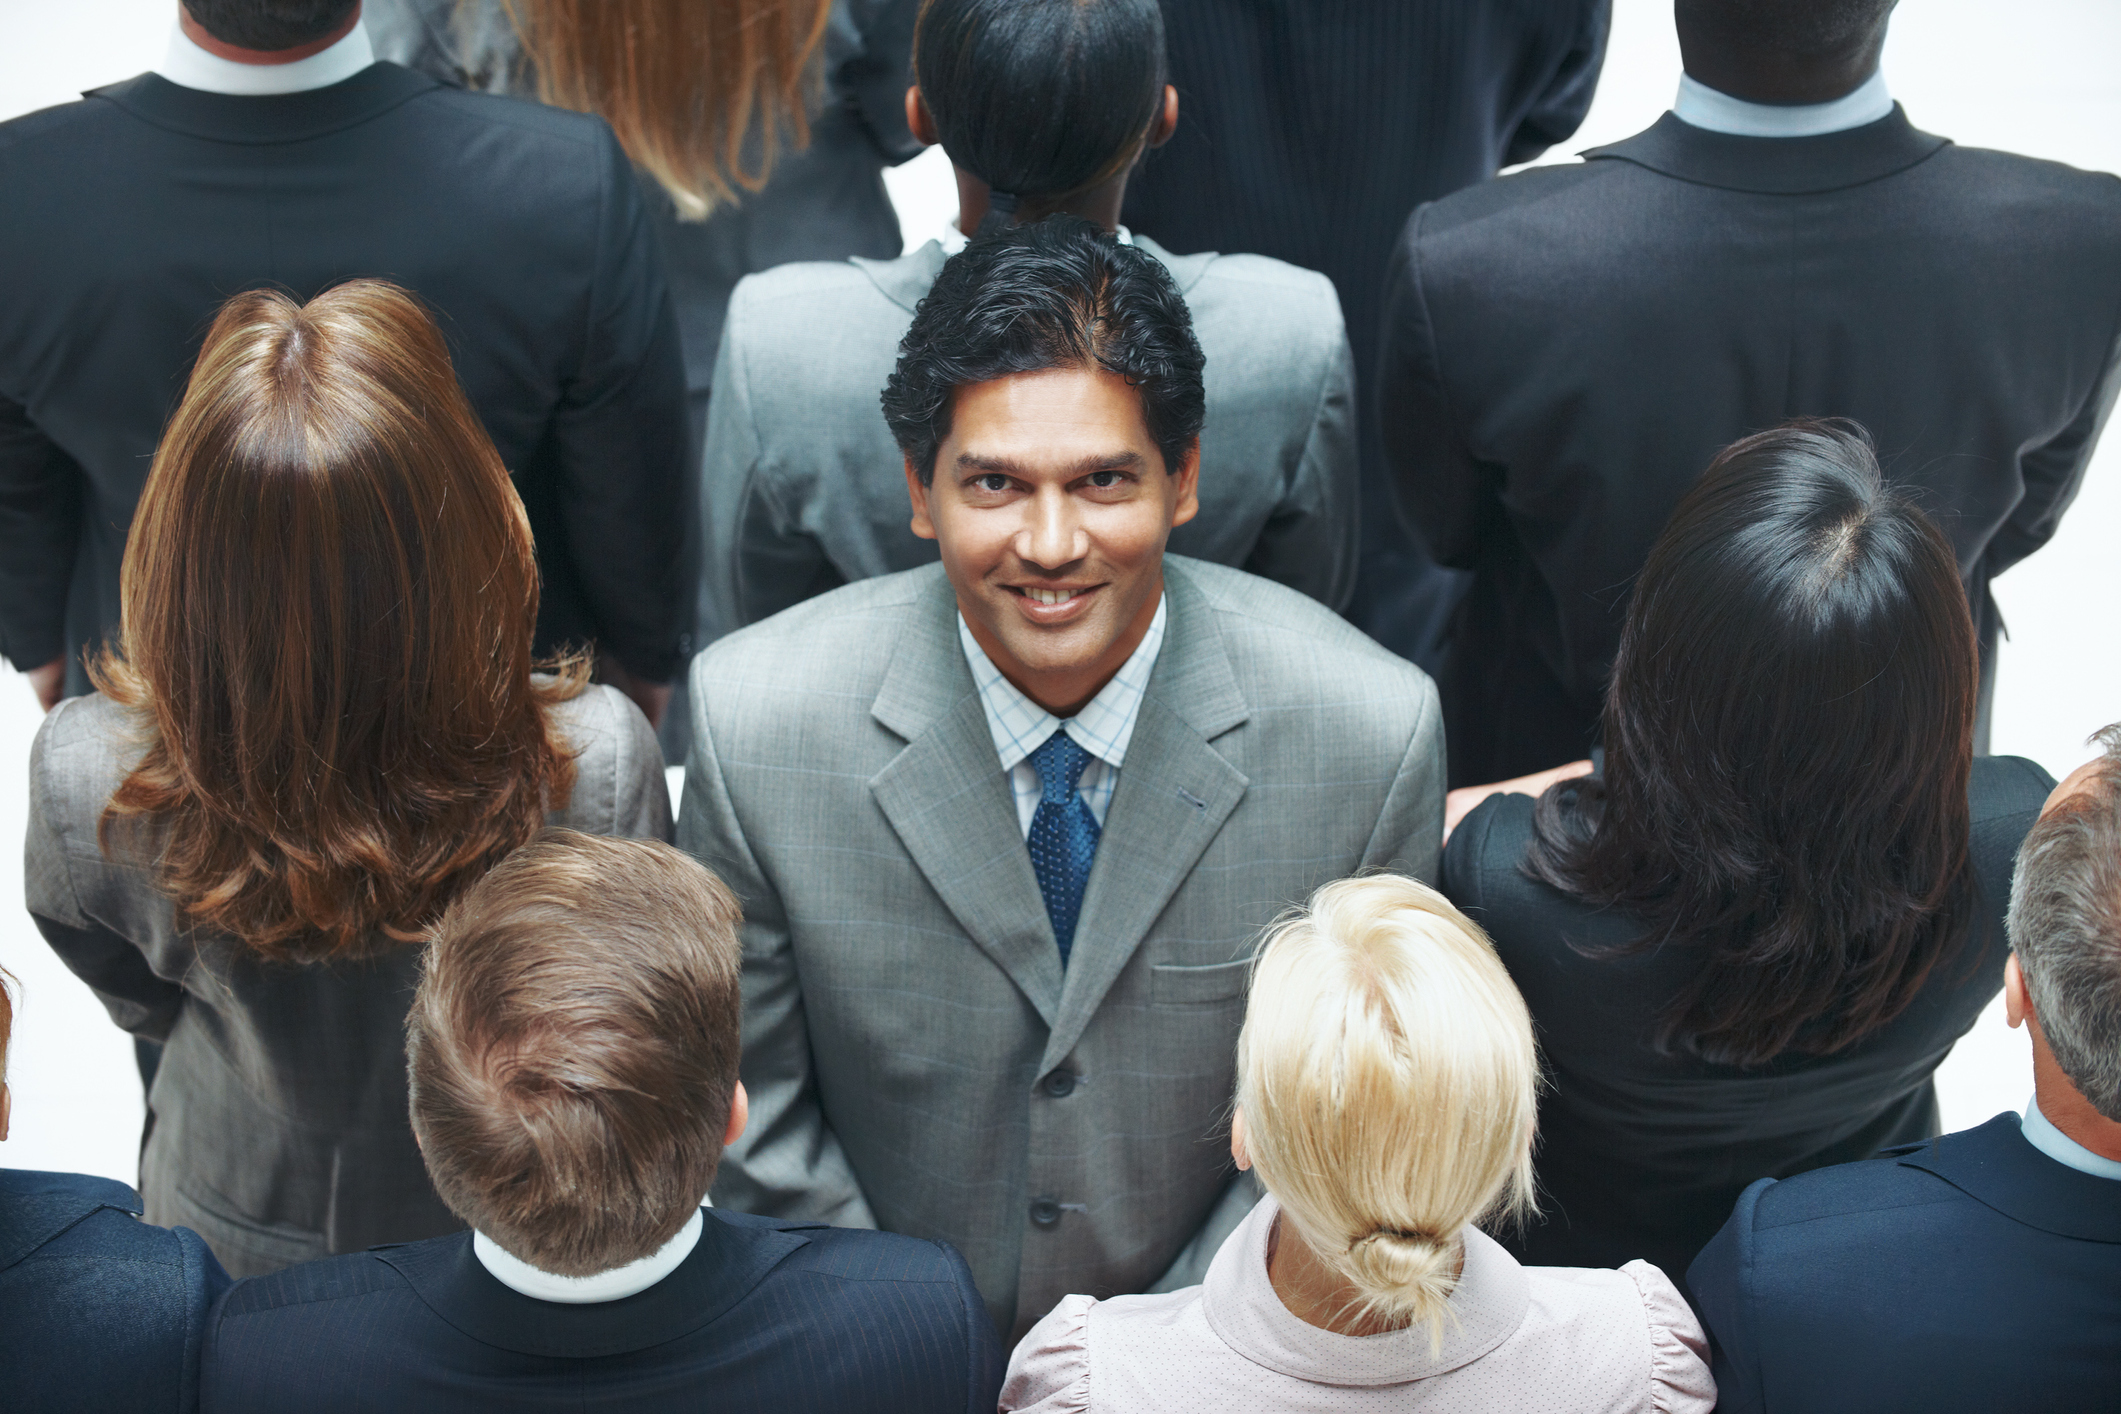 Stock Photo of a businessman against the stream of other businesspeople